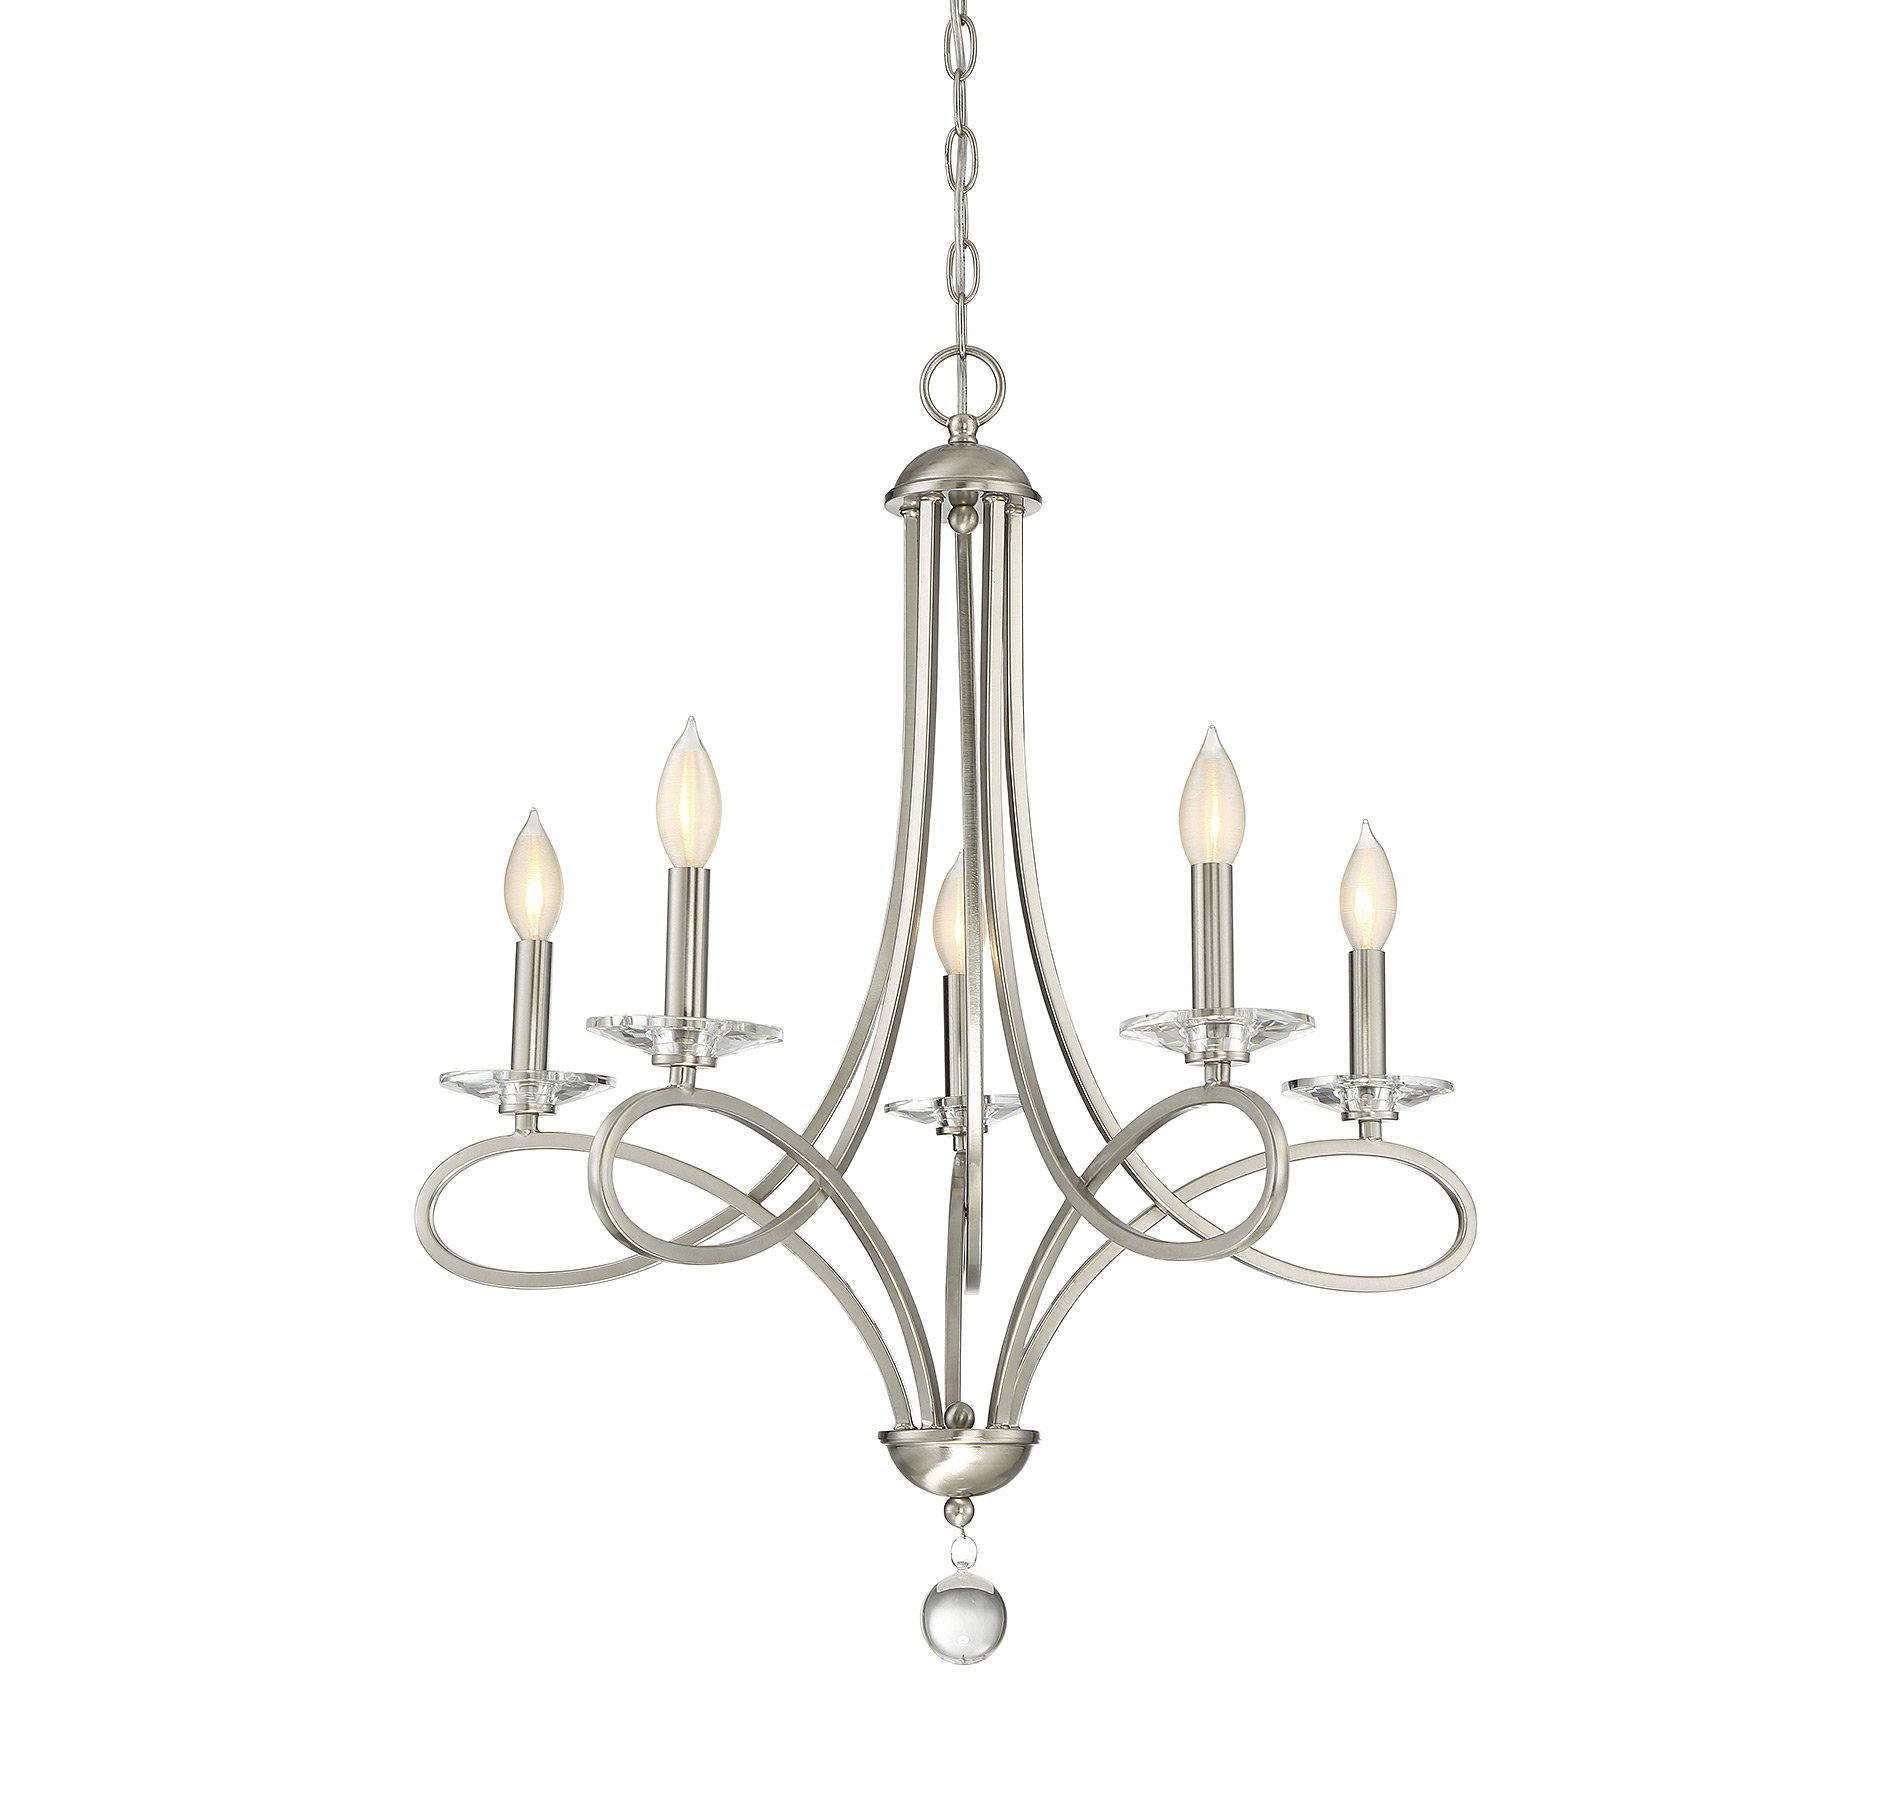 Willa Arlo Interiors Berger 5 Light Candle Style Chandelier Intended For Florentina 5 Light Candle Style Chandeliers (View 12 of 30)